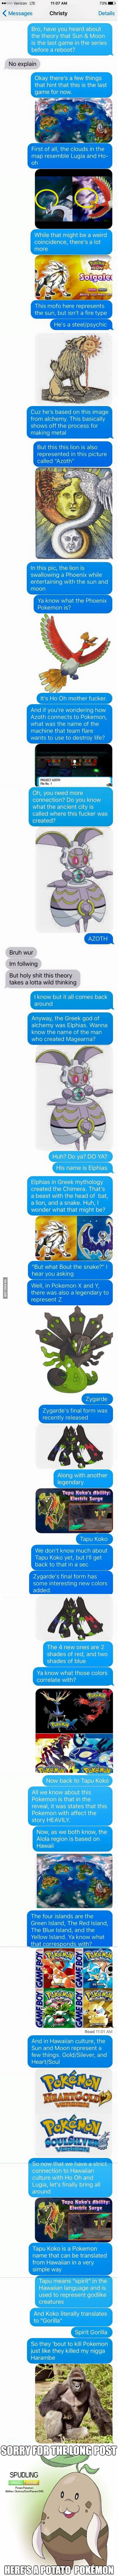 Pokémon Sun and Moon Secrets Revealed